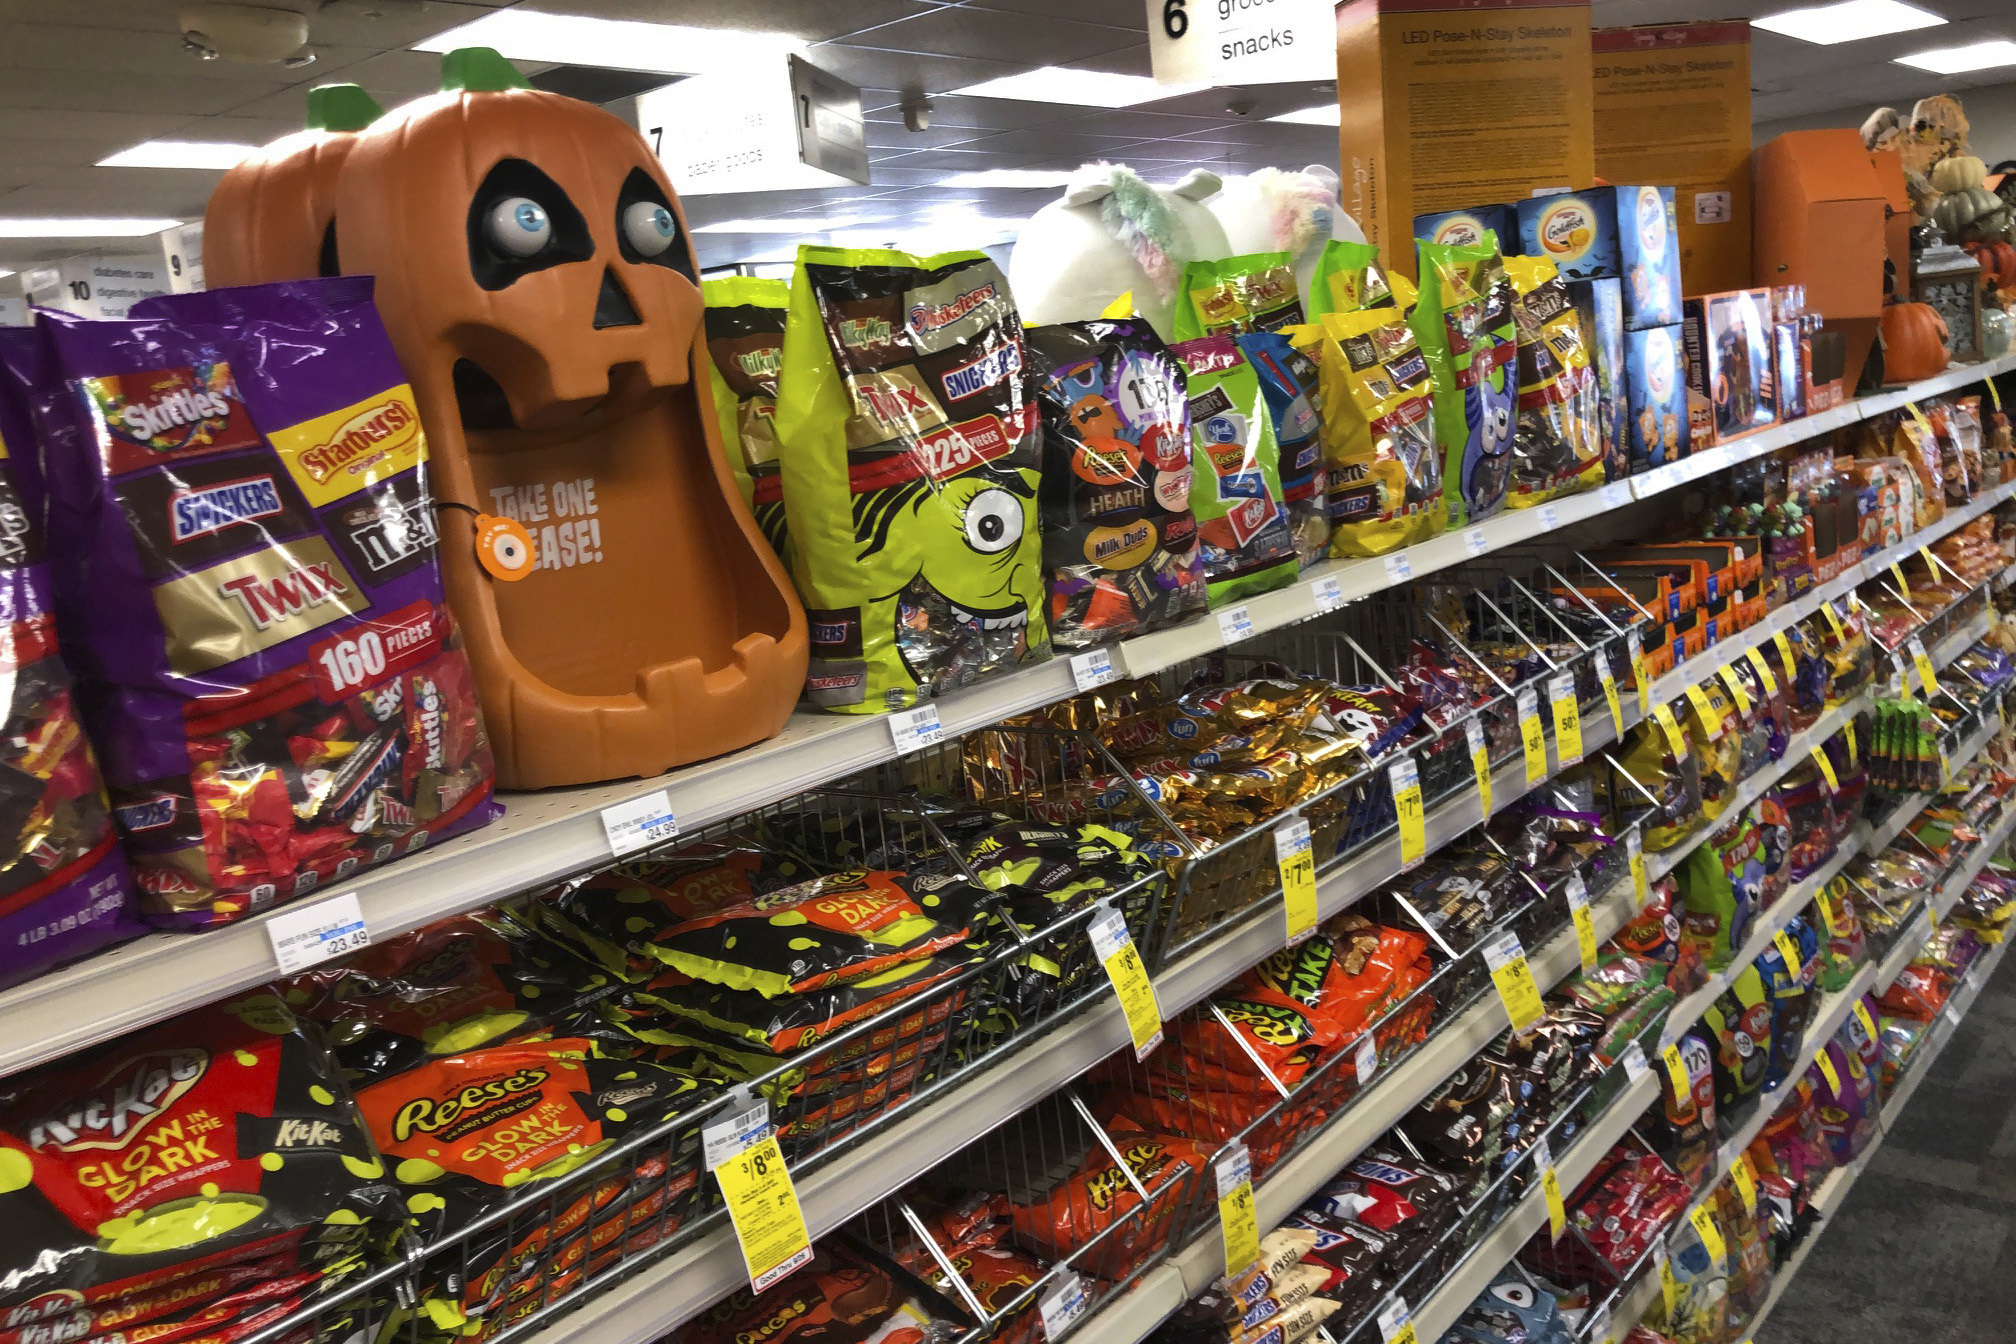 Rochester Wi Halloween Events 2020 Americans load up on candy, trick or treat – or not | RochesterFirst